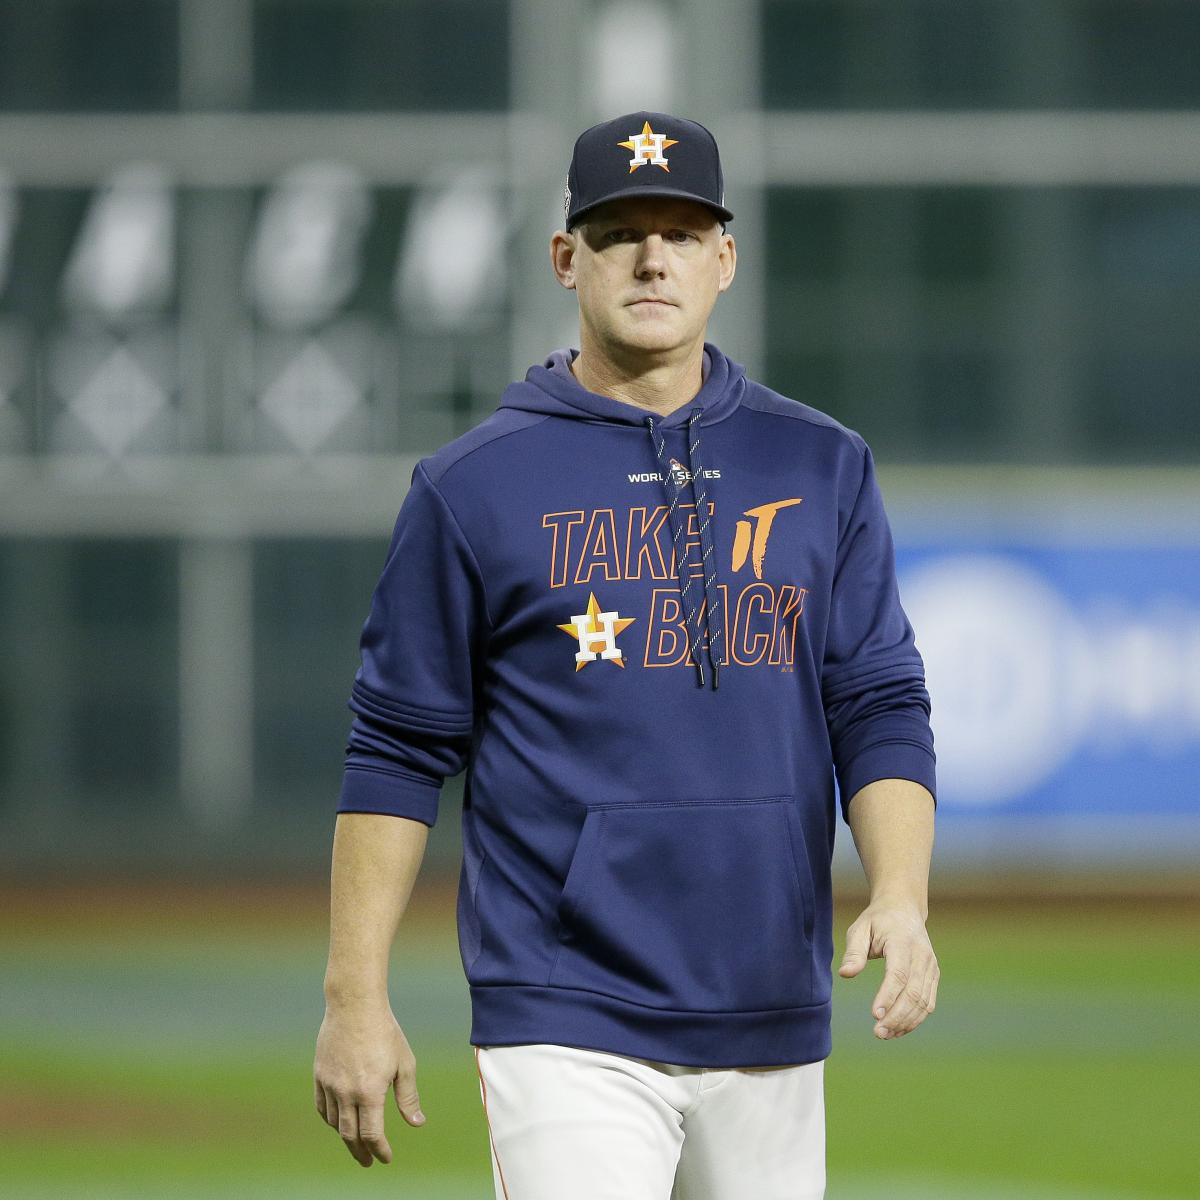 Astros Fire AJ Hinch, Jeff Luhnow for Cheating; Joe Espada to Be Interim Manager